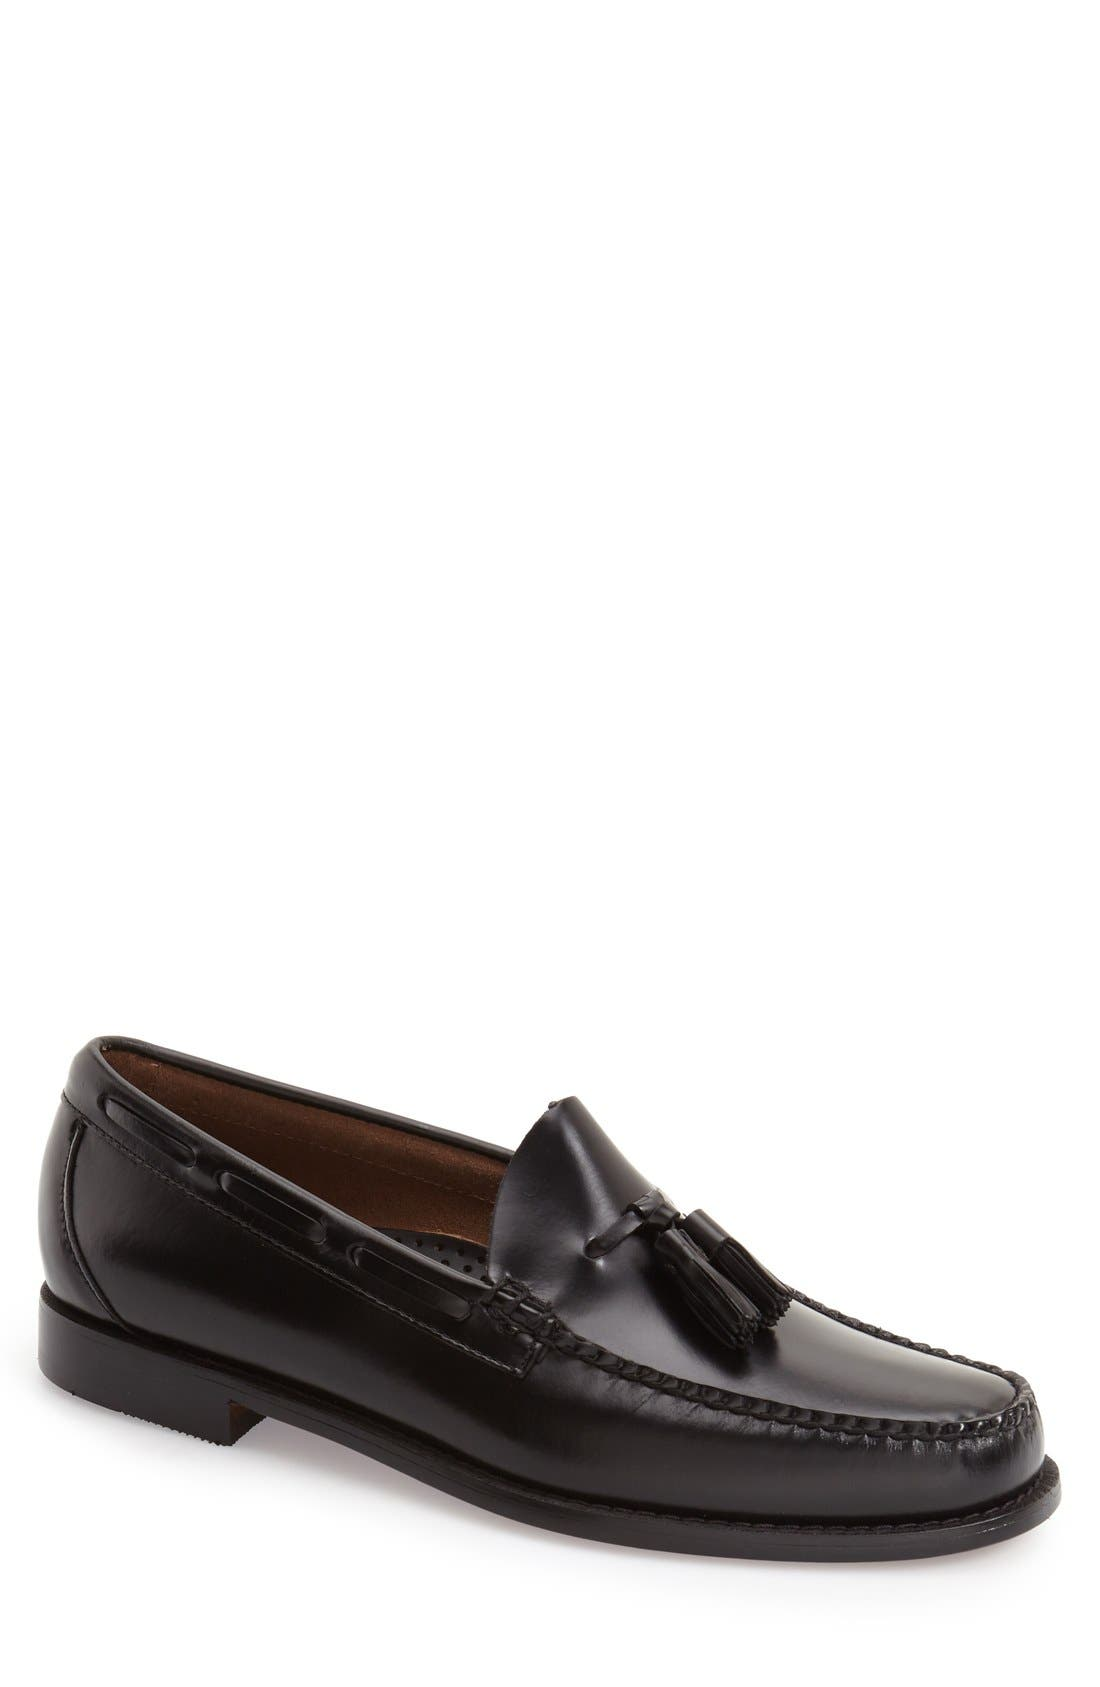 'Lexington - Weejuns' Tassel Loafer,                             Main thumbnail 1, color,                             001